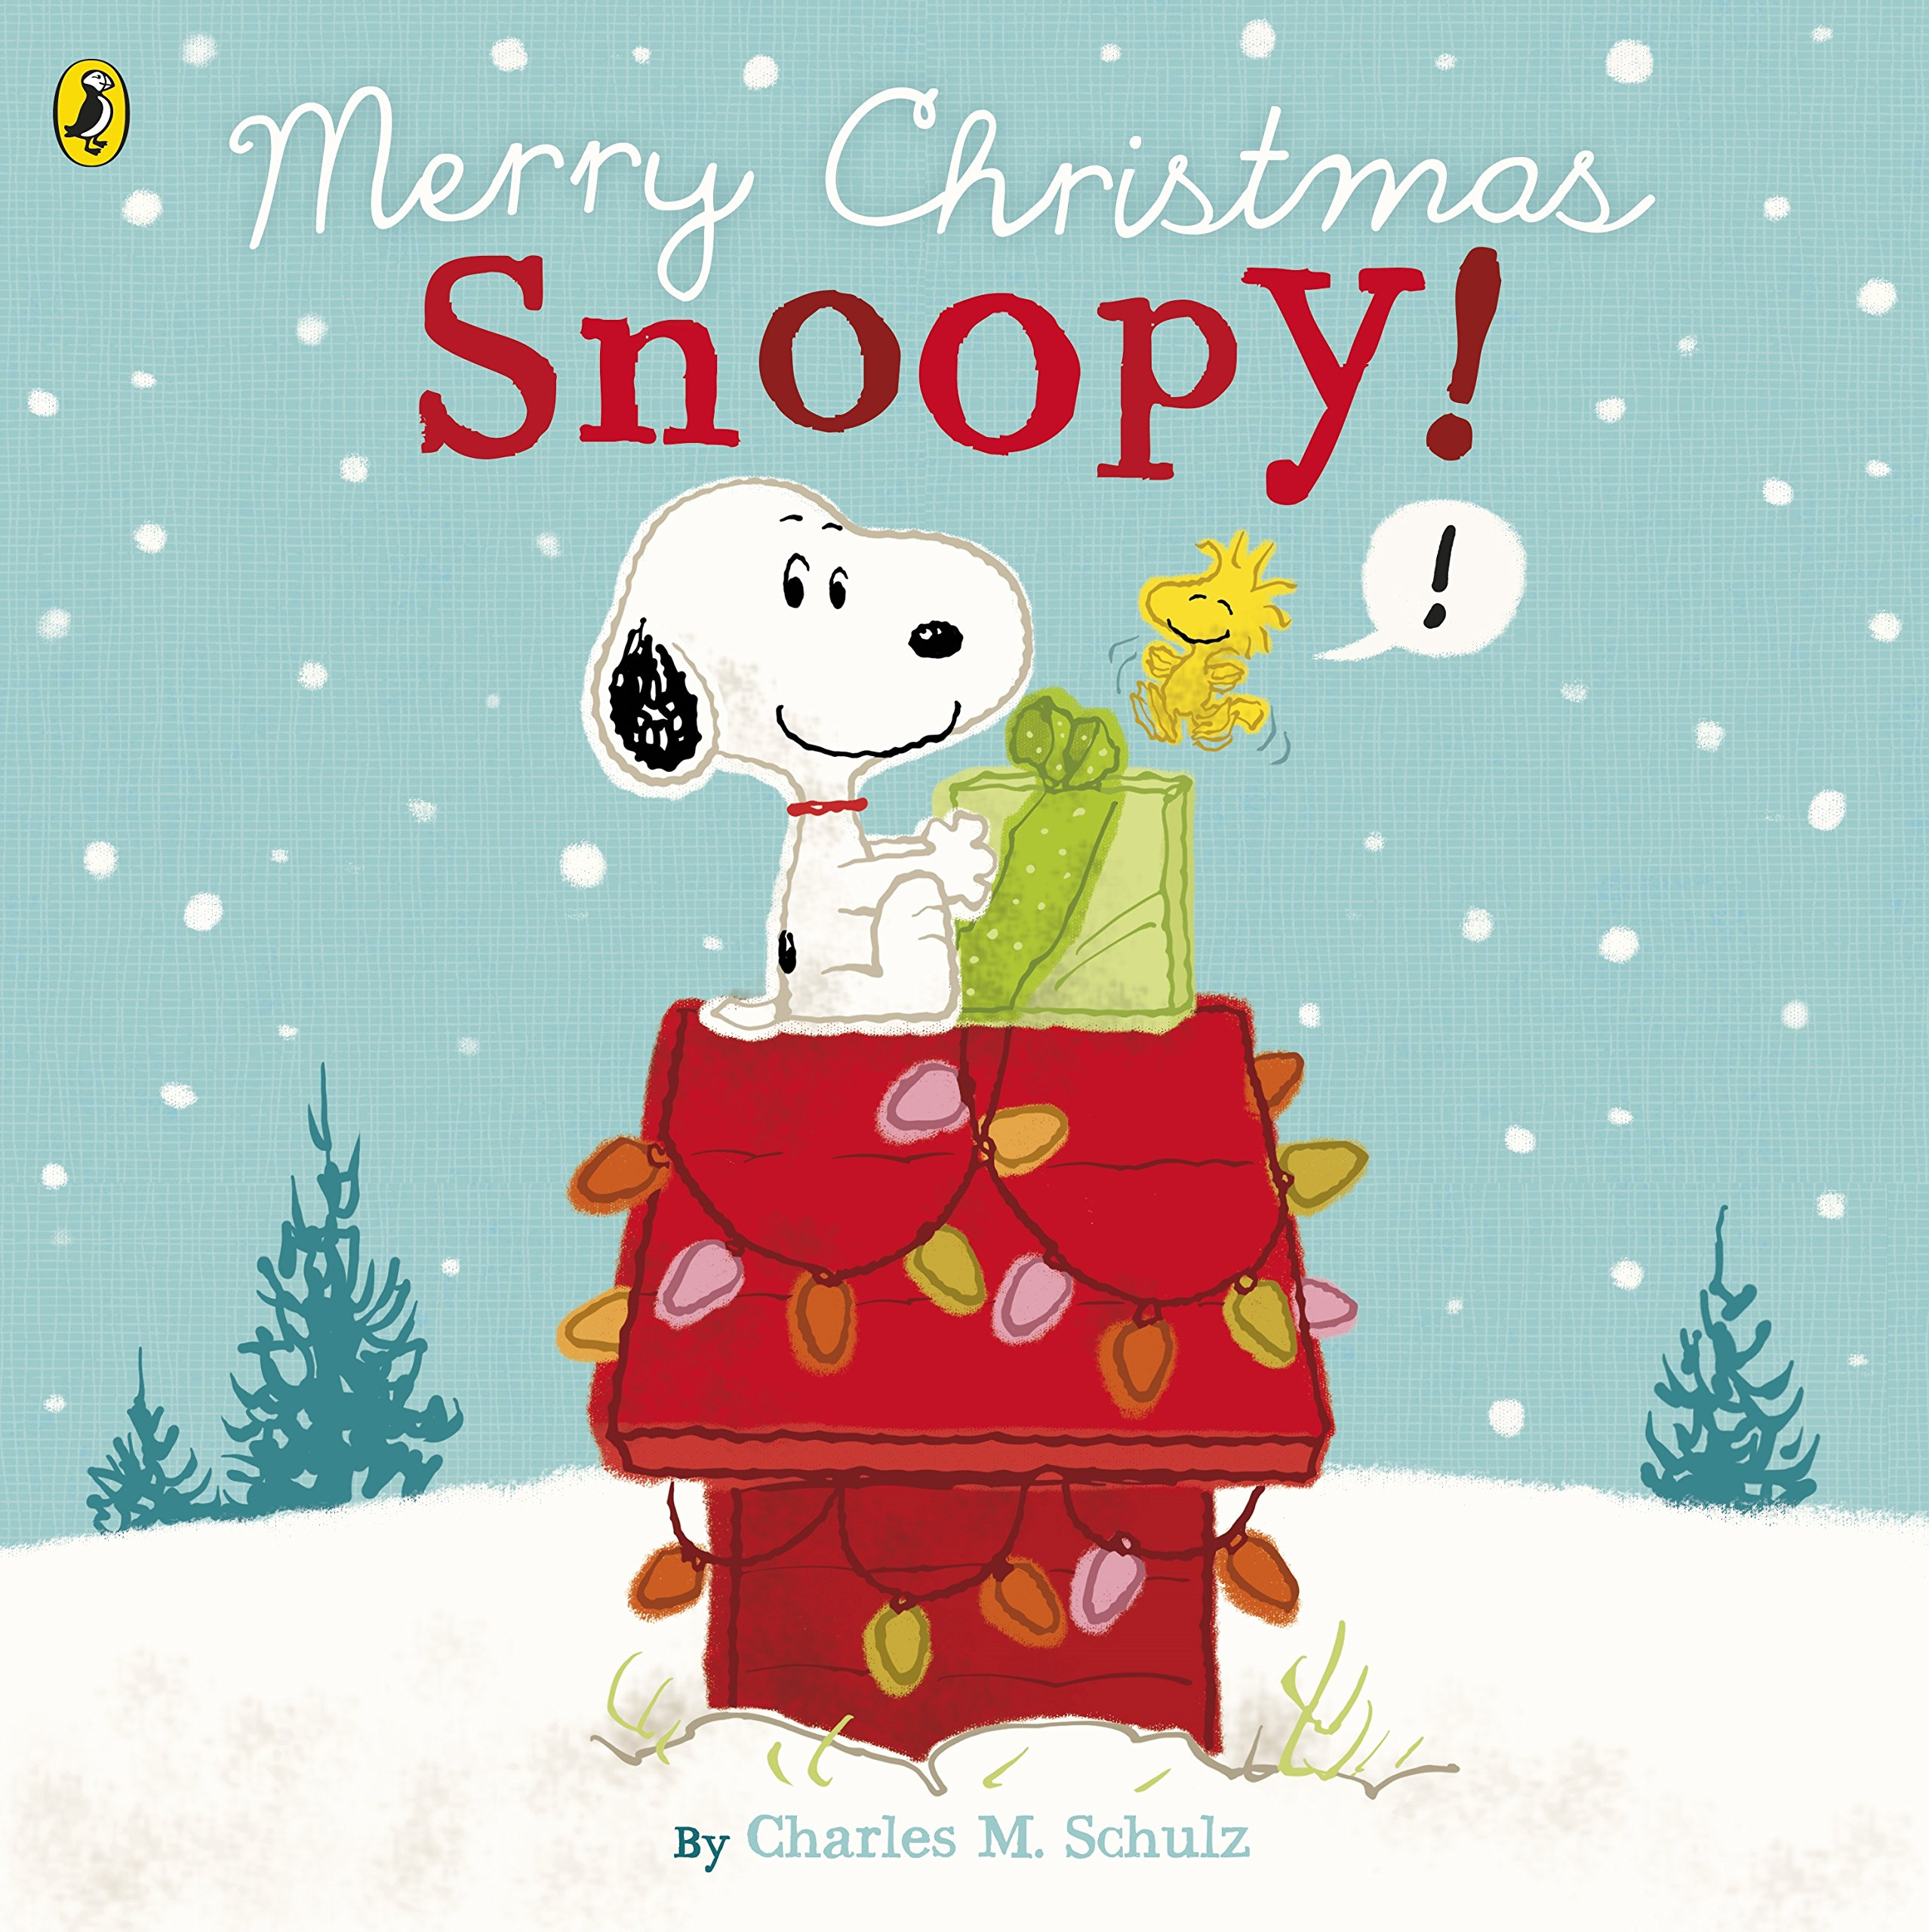 peanuts merry christmas snoopy charles m schulz 9780723294061 amazoncom books - Snoopy Merry Christmas Images